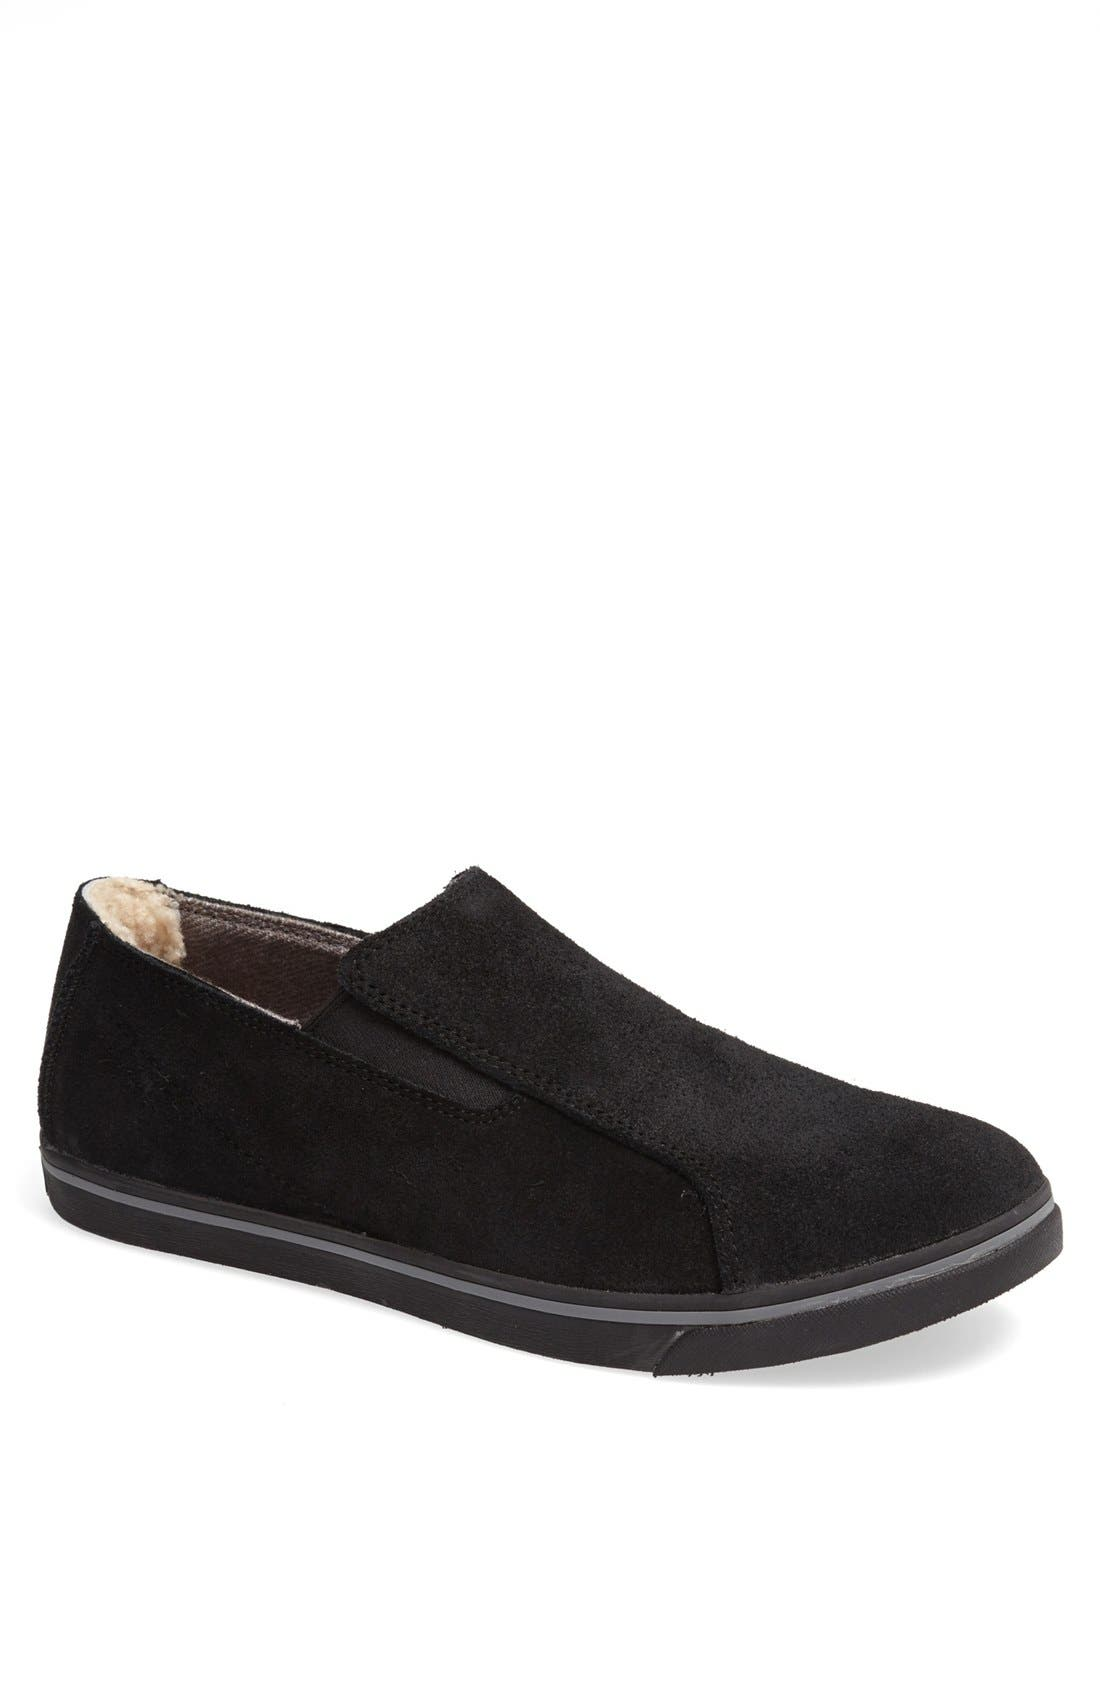 Main Image - UGG® Australia 'Bracken' Slip-On